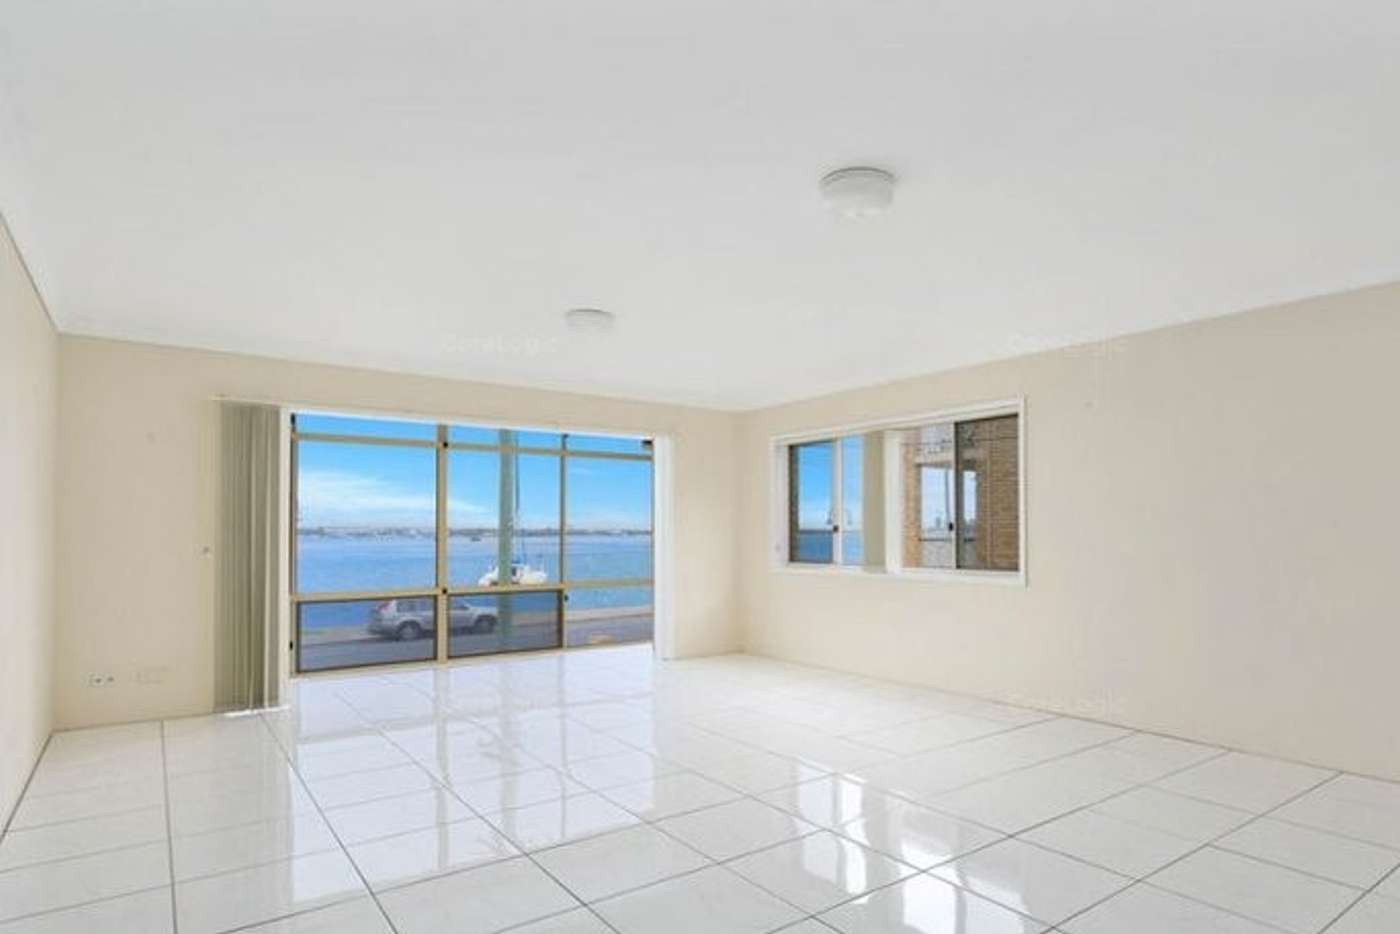 Main view of Homely unit listing, 6-266 Marine Parade, Labrador QLD 4215